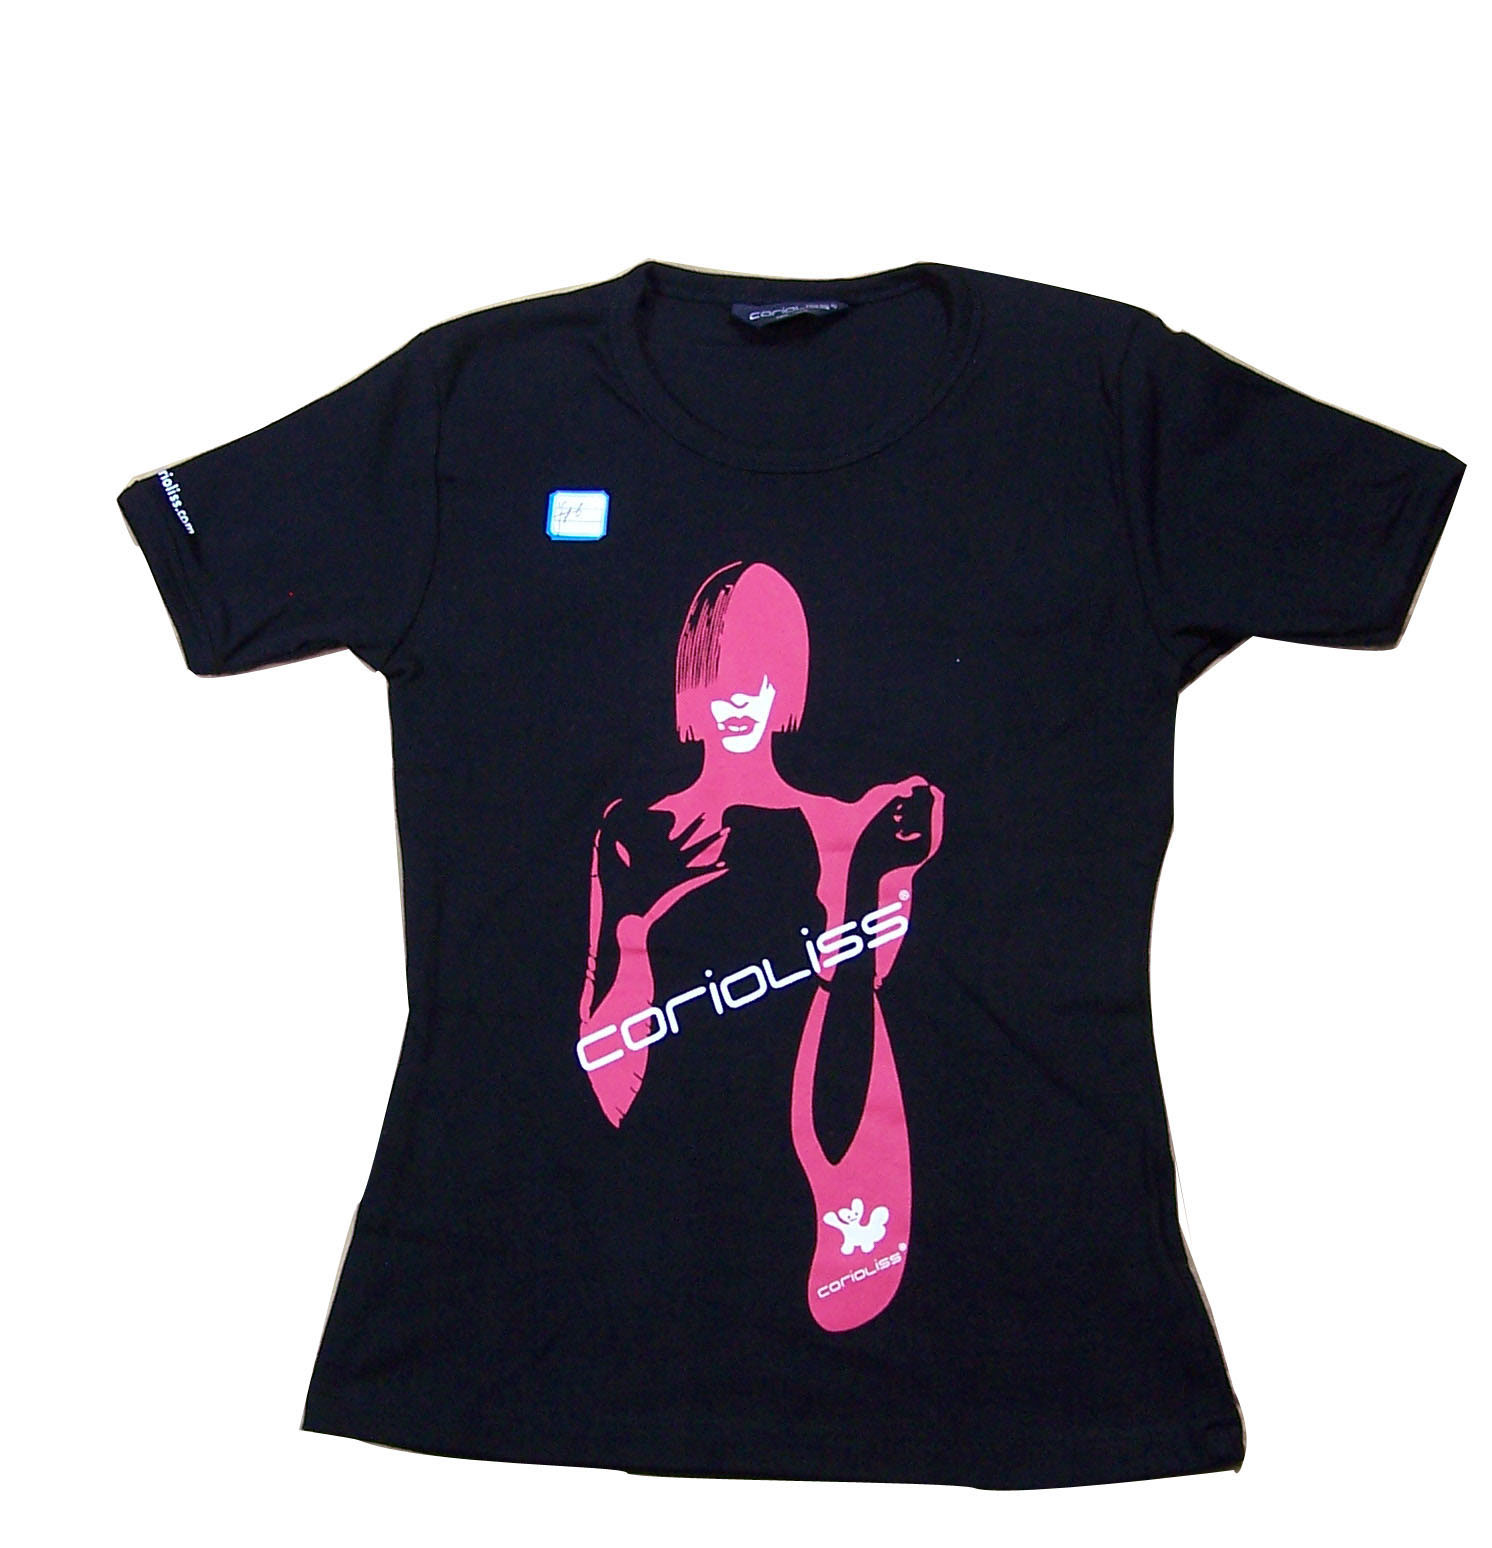 Fashion screen printing for Screen print on t shirts